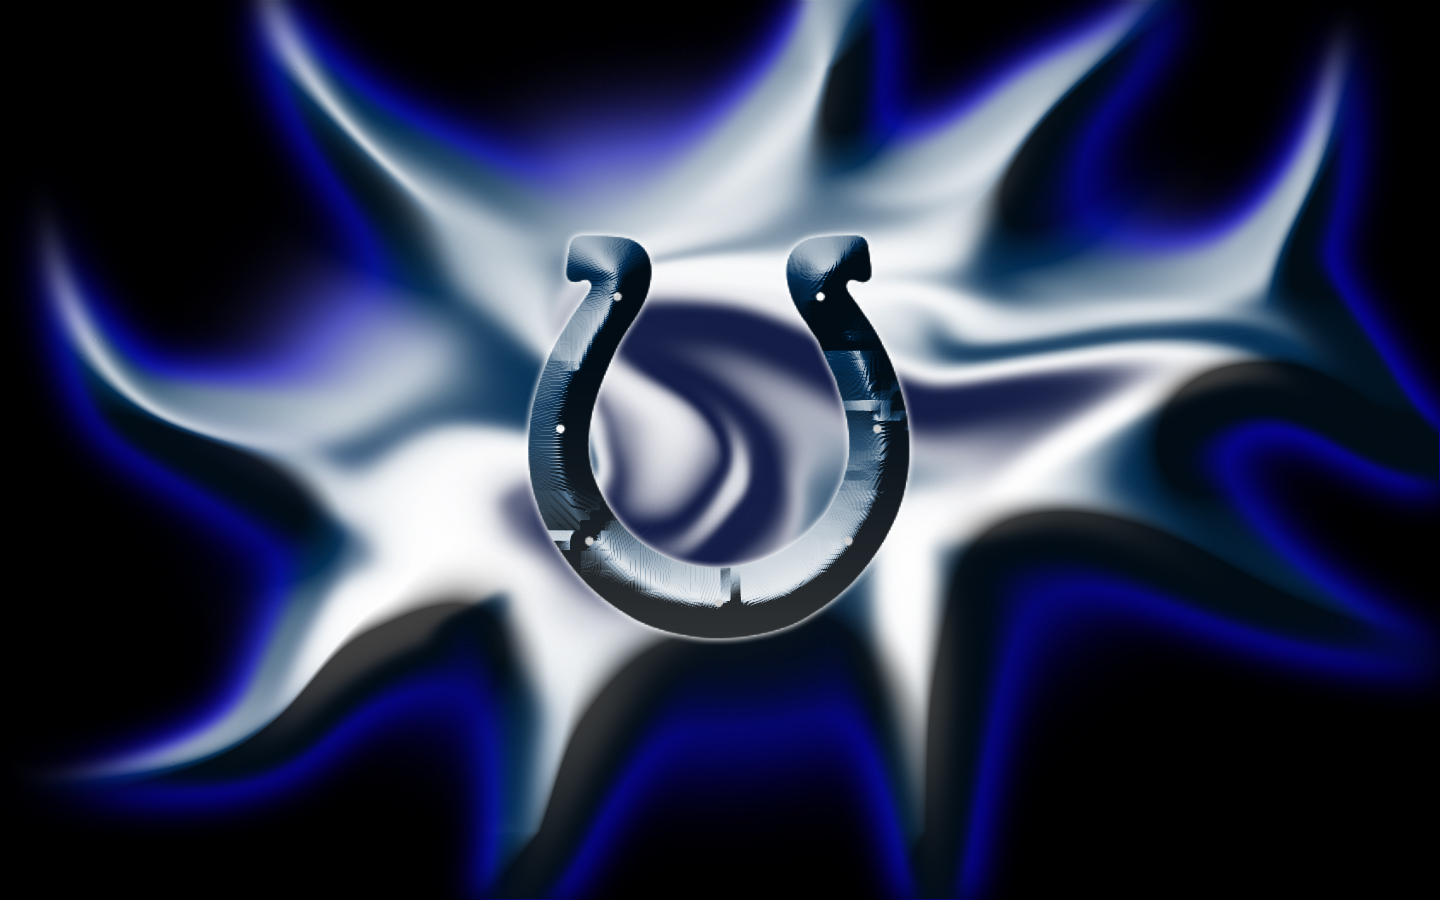 like this Indianapolis Colts wallpaper HD background as much as we do 1440x900